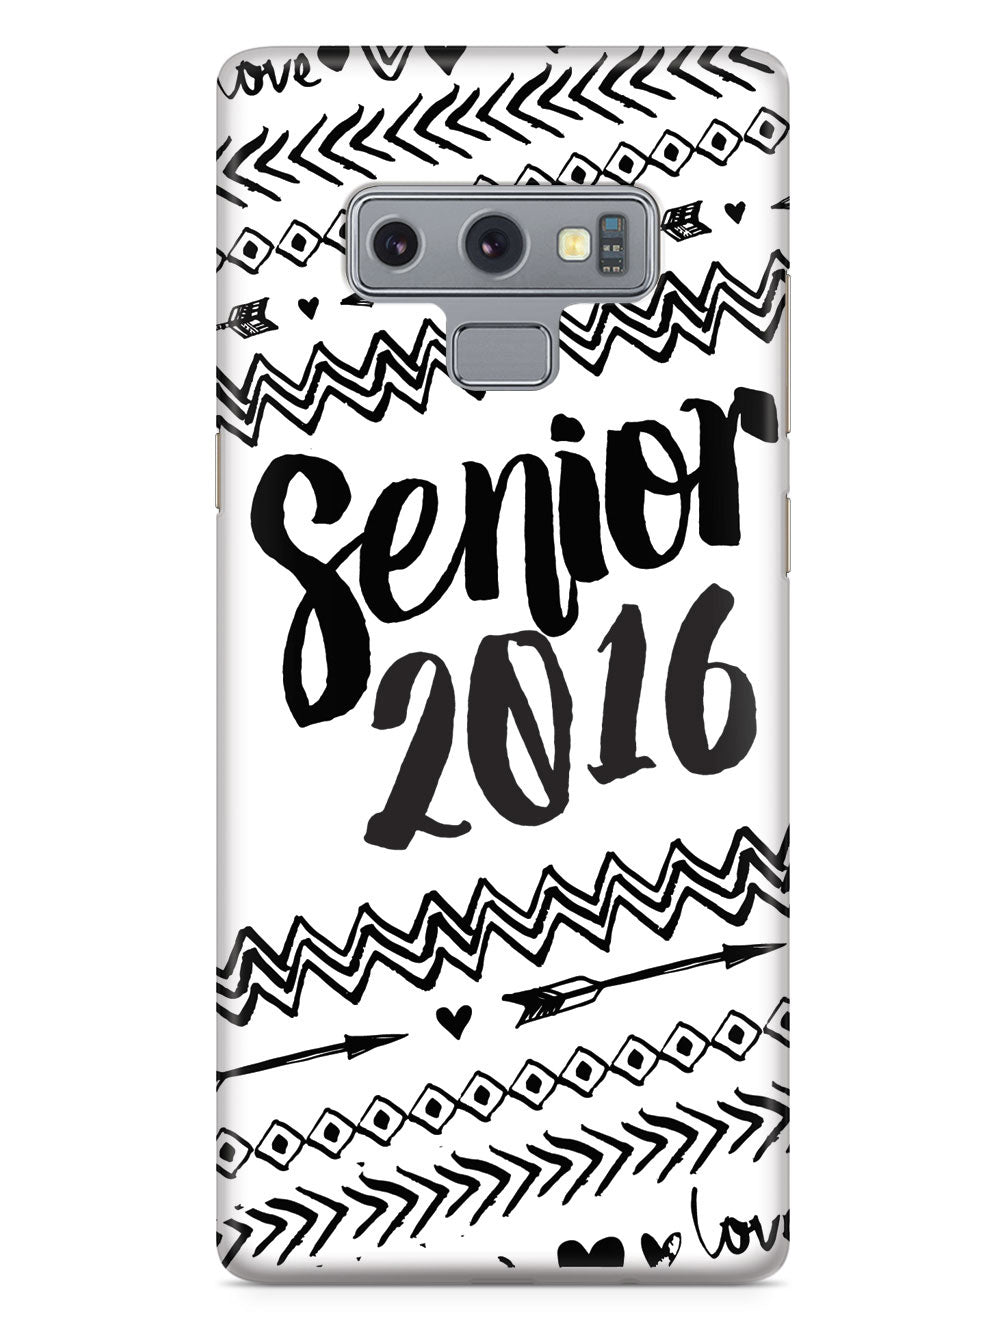 Senior 2016 - Black Case